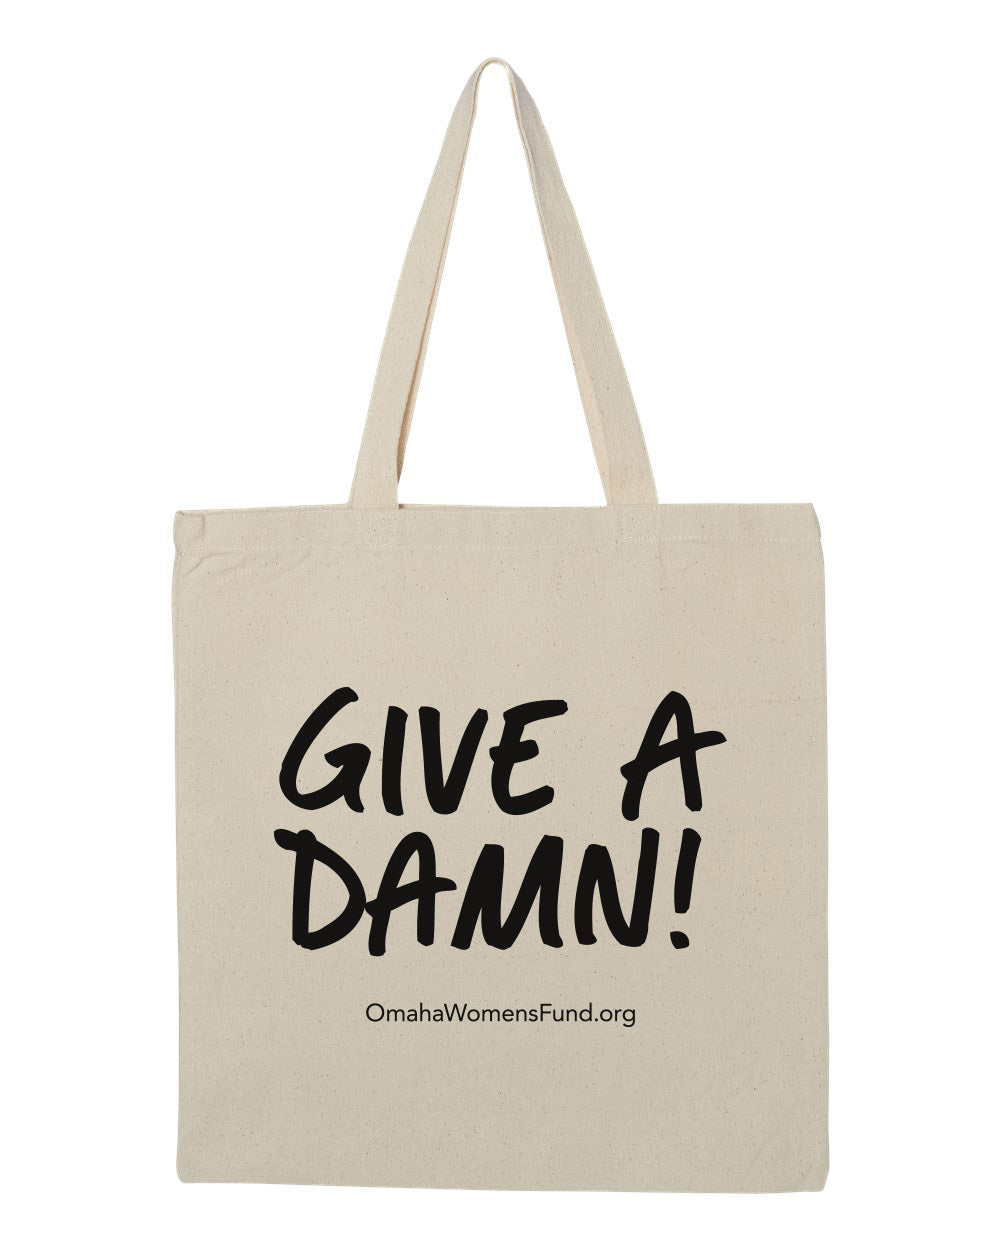 Women's Fund Of Omaha | Give A Damn! Tote